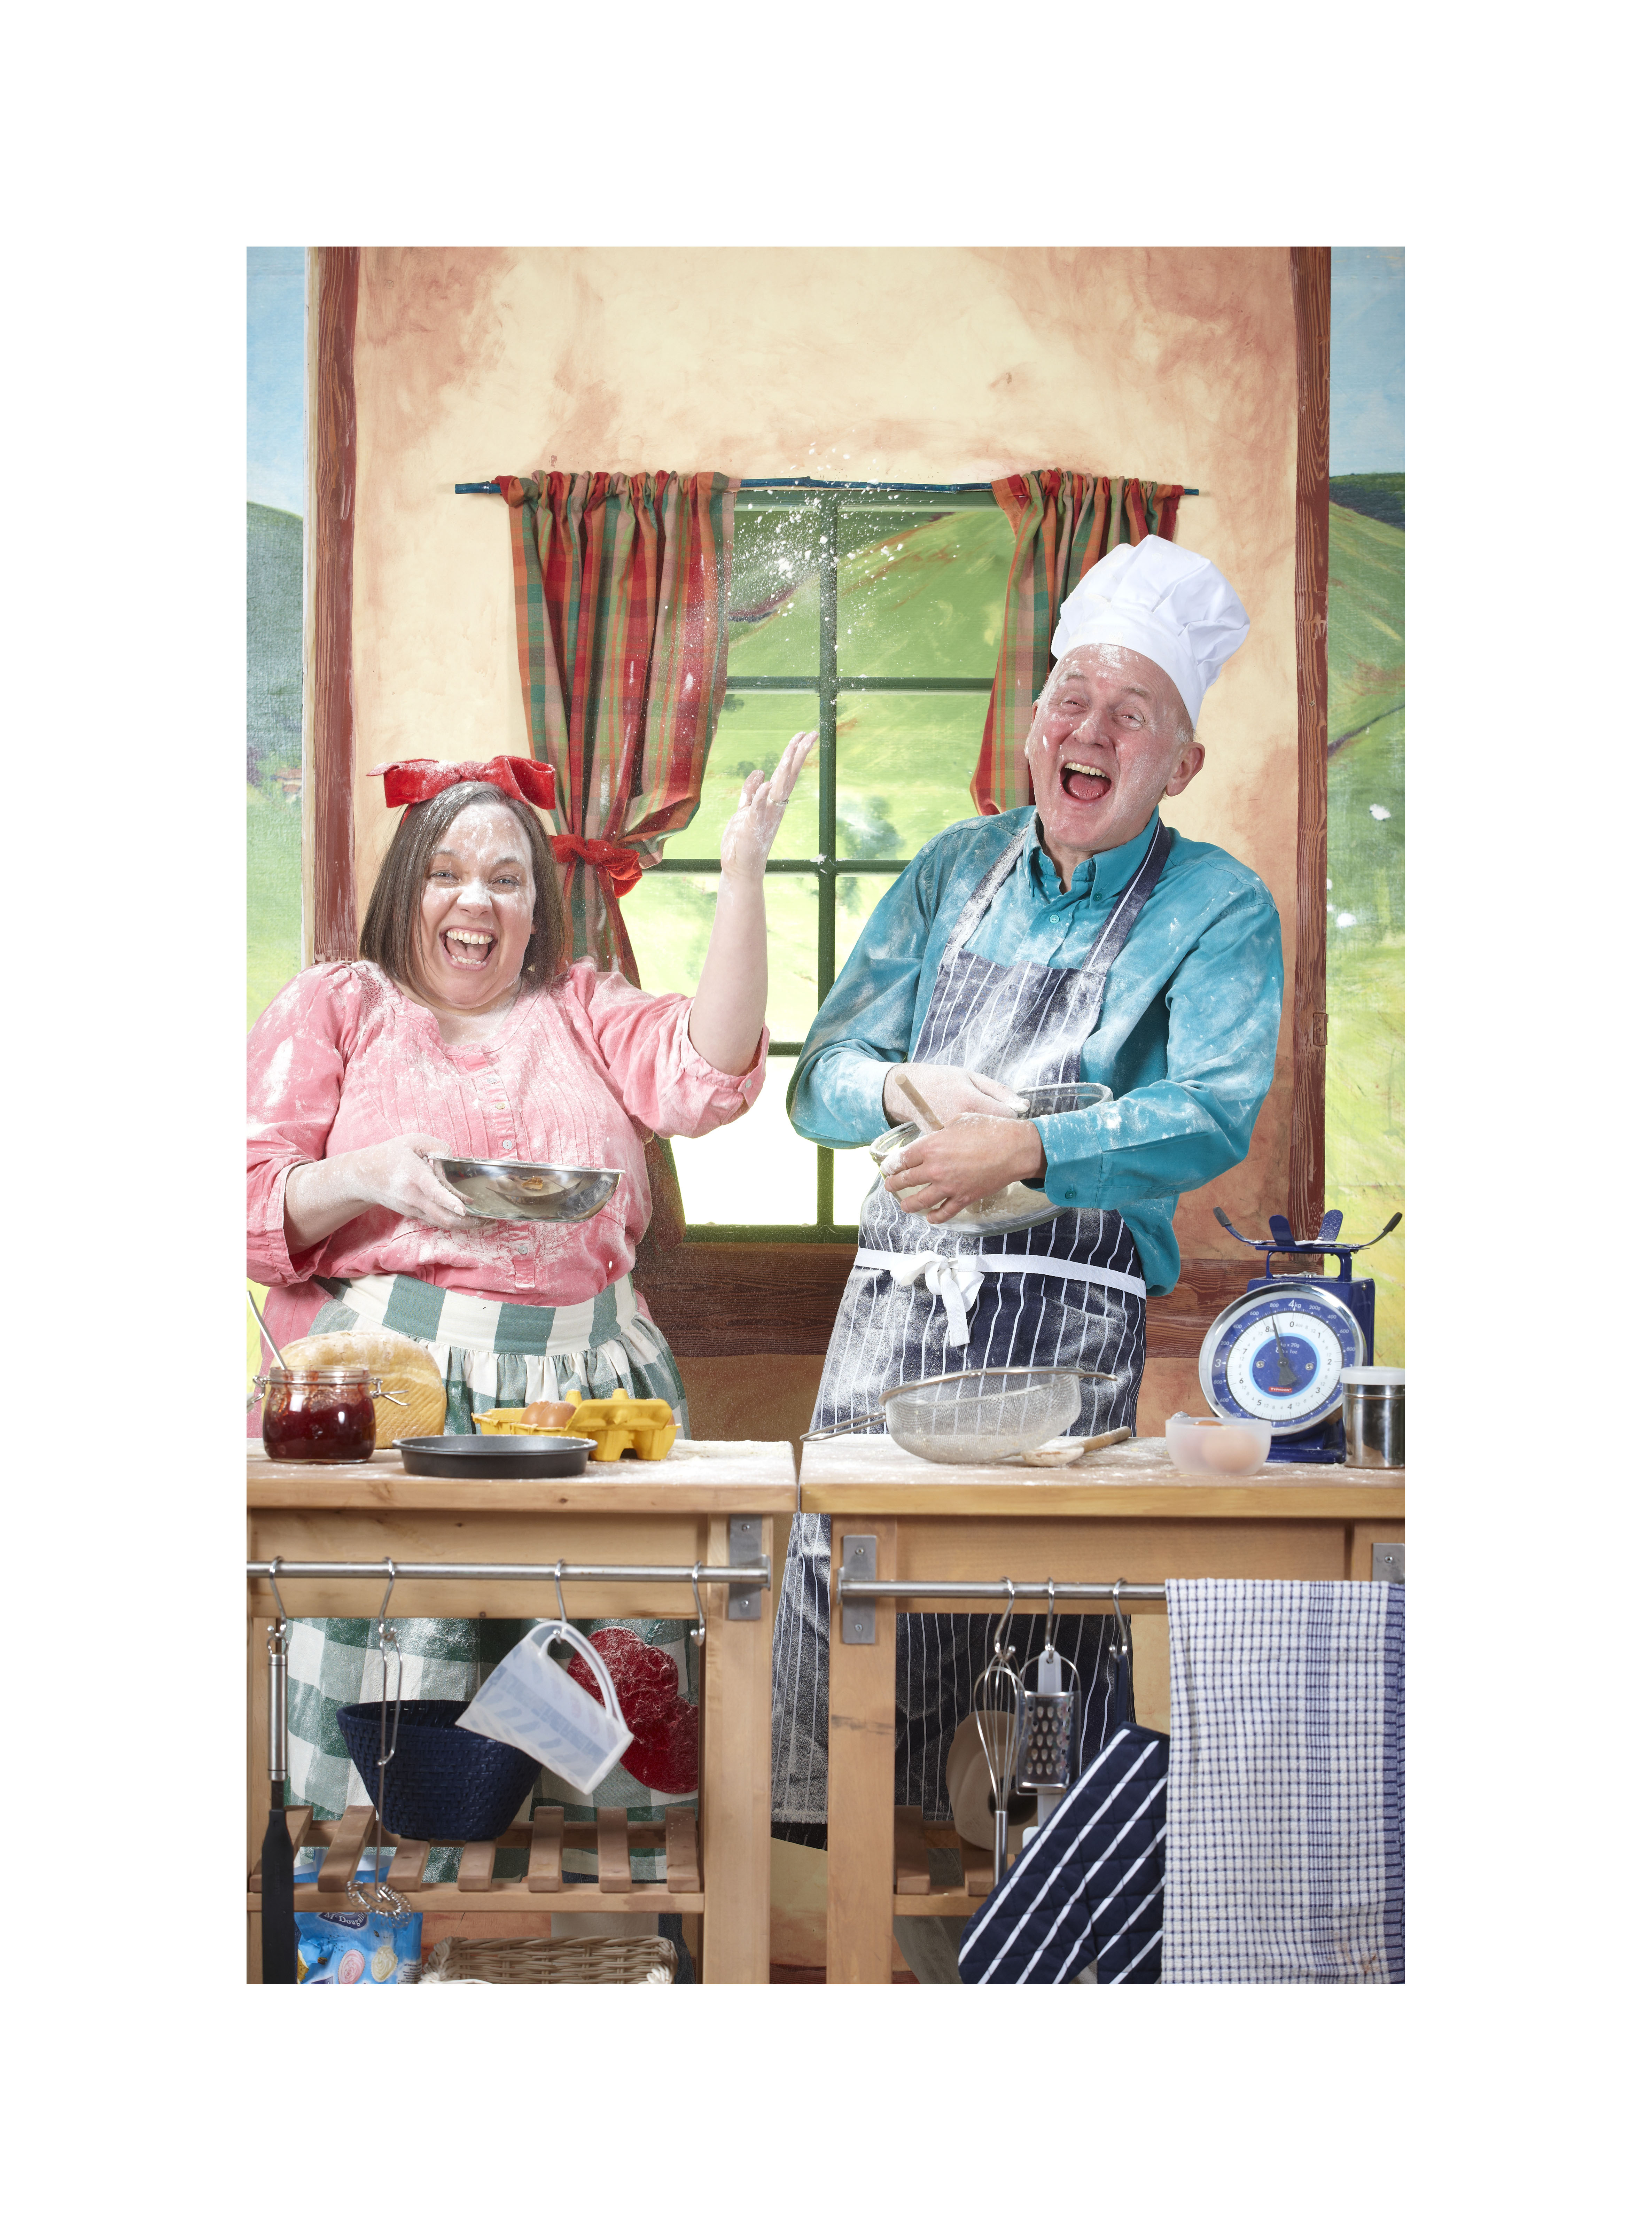 Bert's Magical Musical Kitchen Pictures